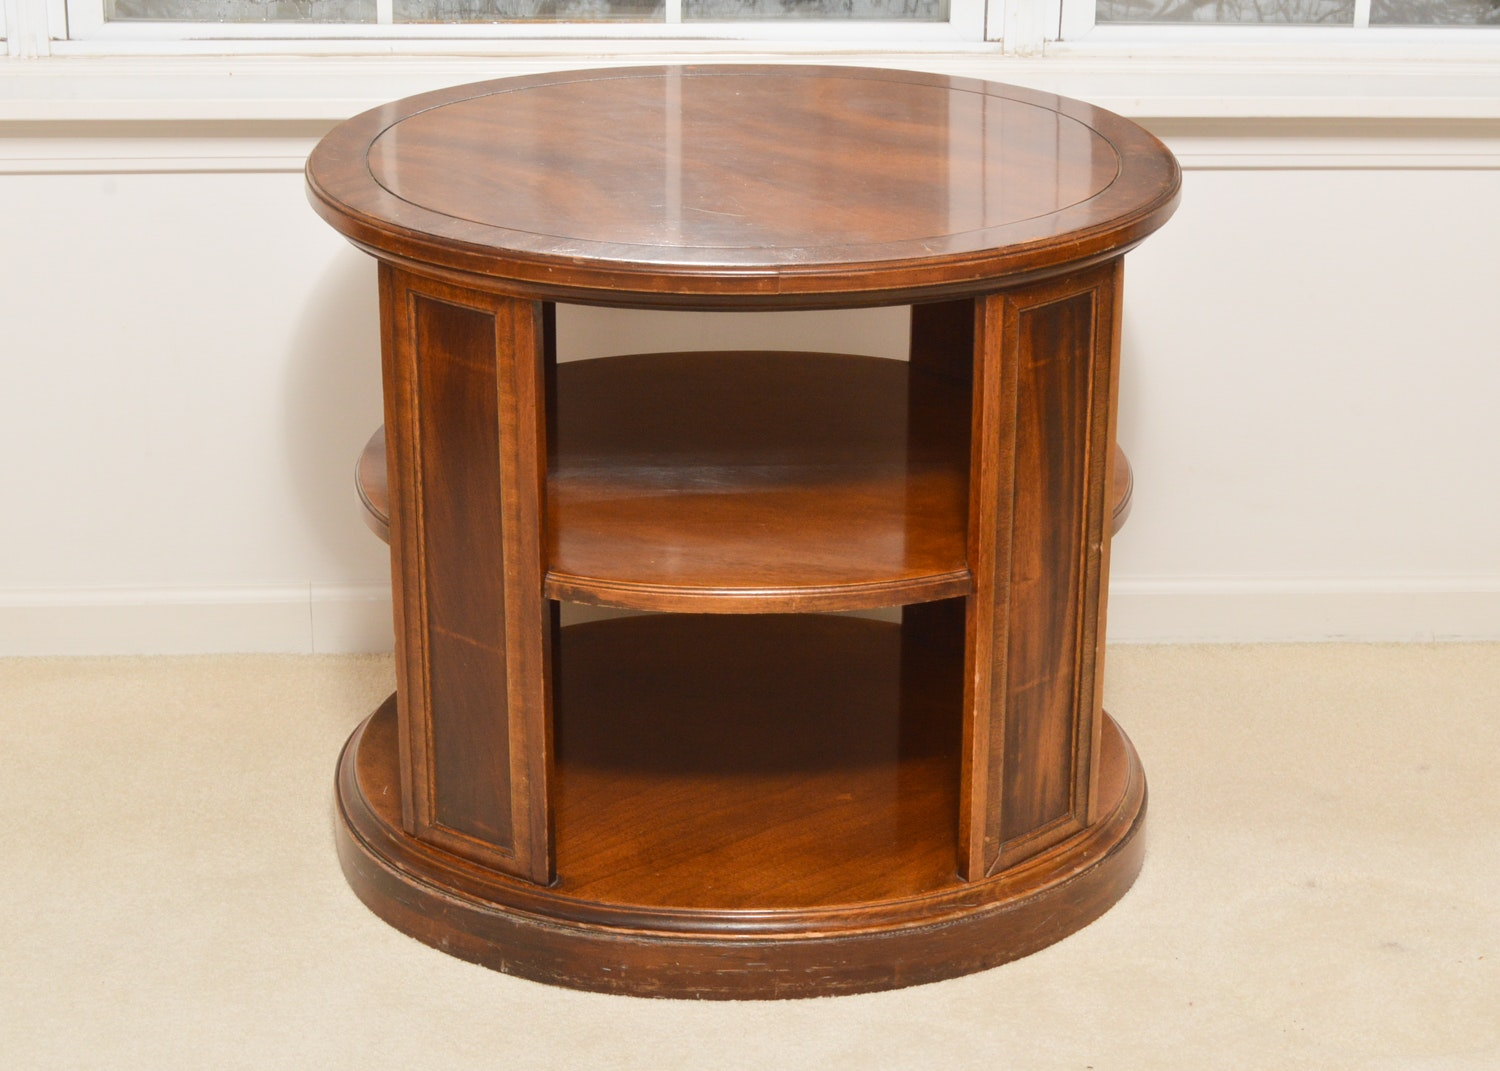 Vintage Oval Tiered Table